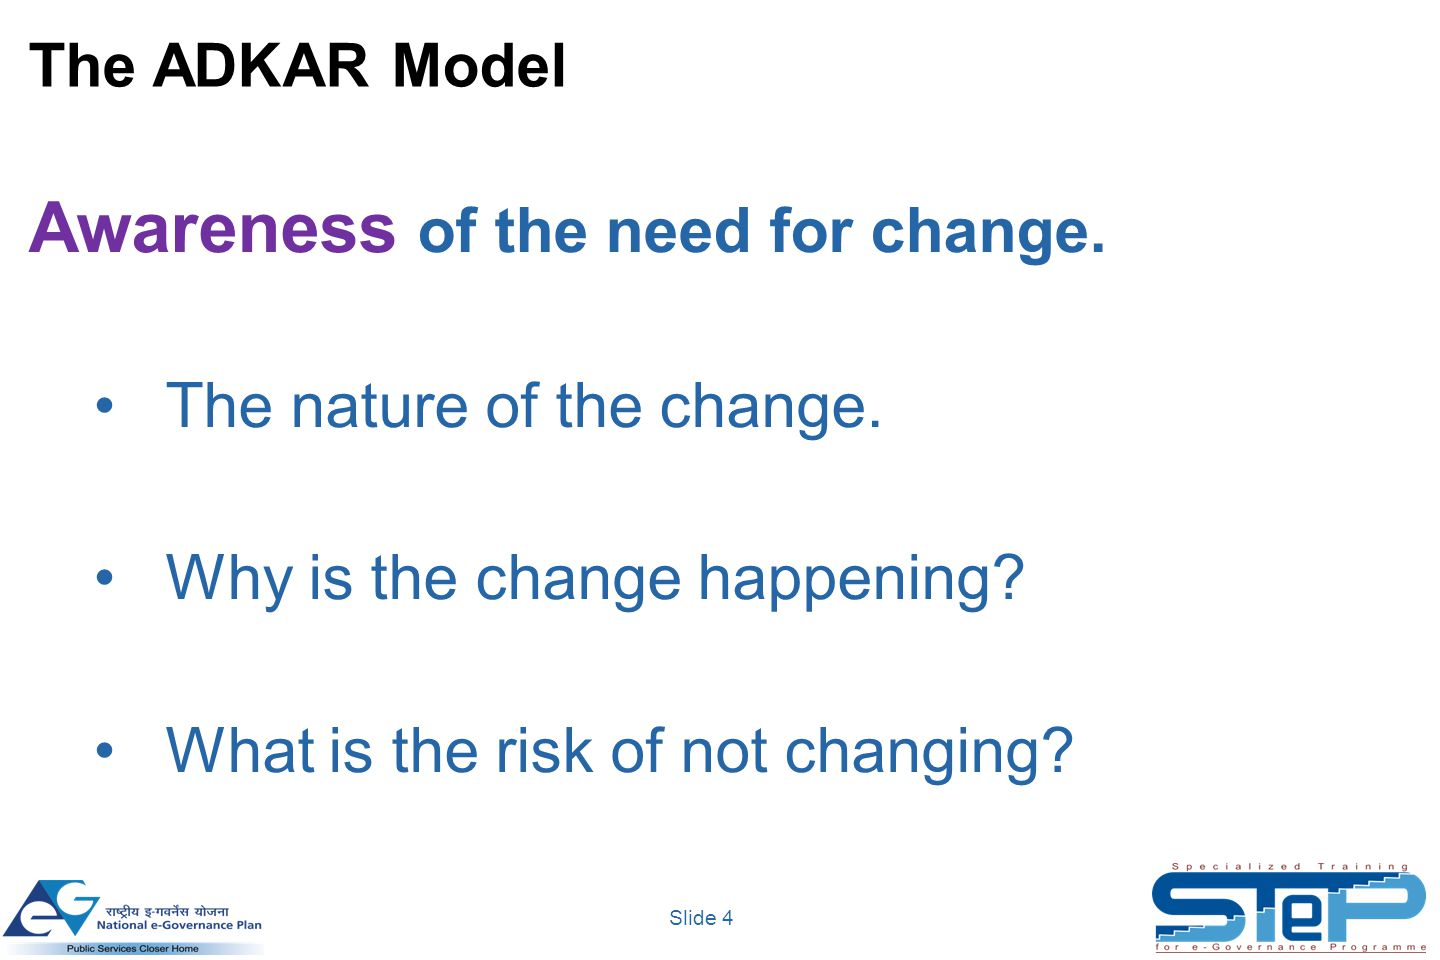 Slide 4 Awareness of the need for change. The nature of the change. Why is the change happening? What is the risk of not changing? The ADKAR Model